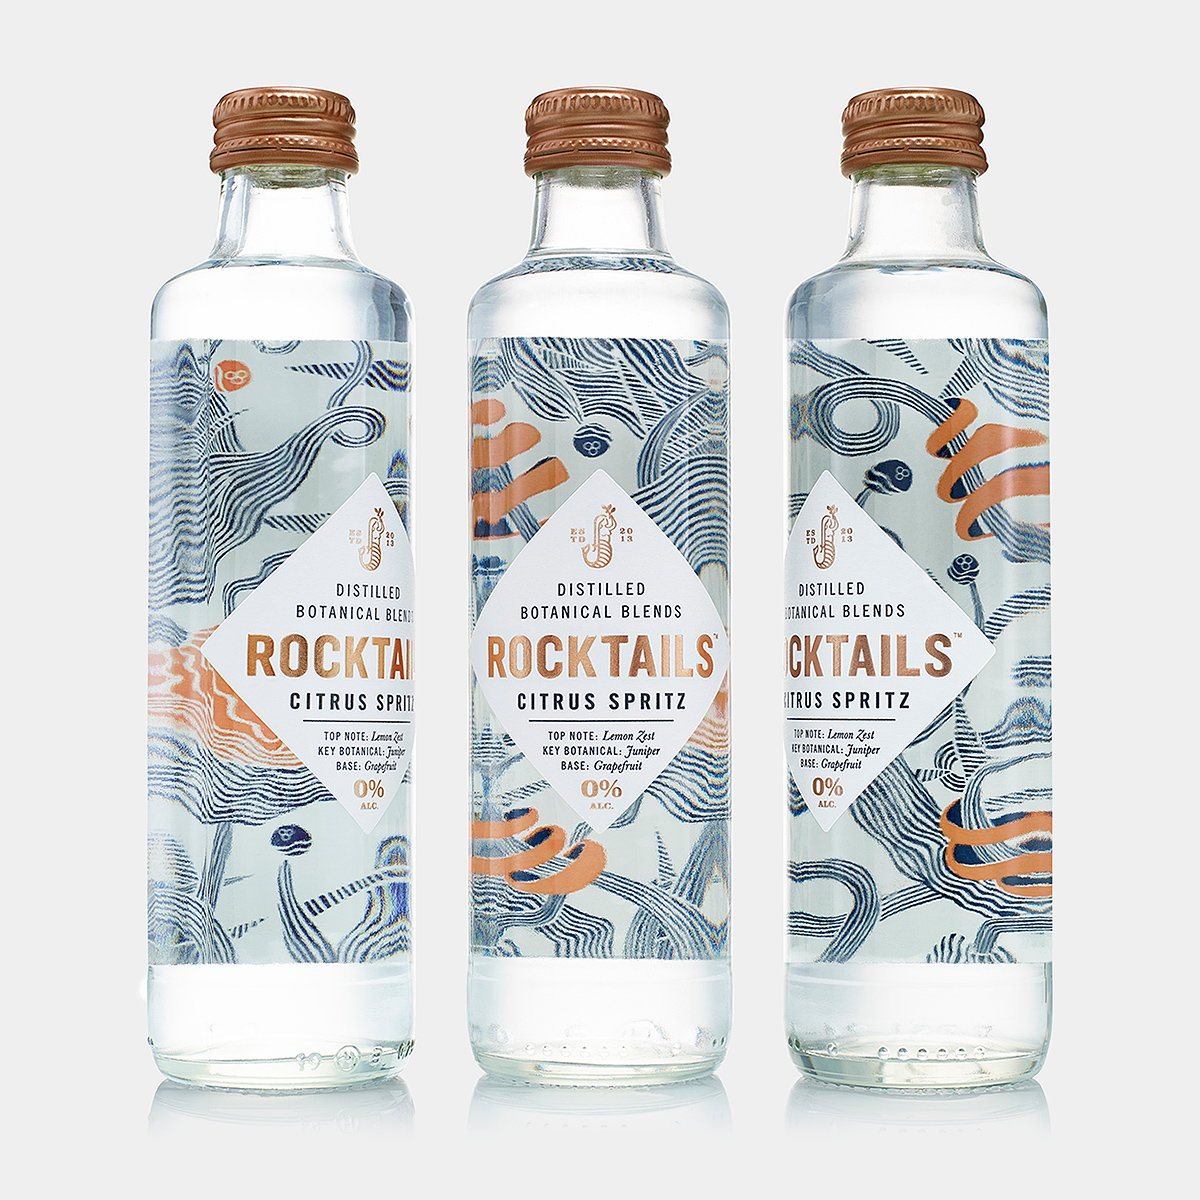 B&B Studio Delivers Sophisticated Identity for Launch of ROCKTAILS